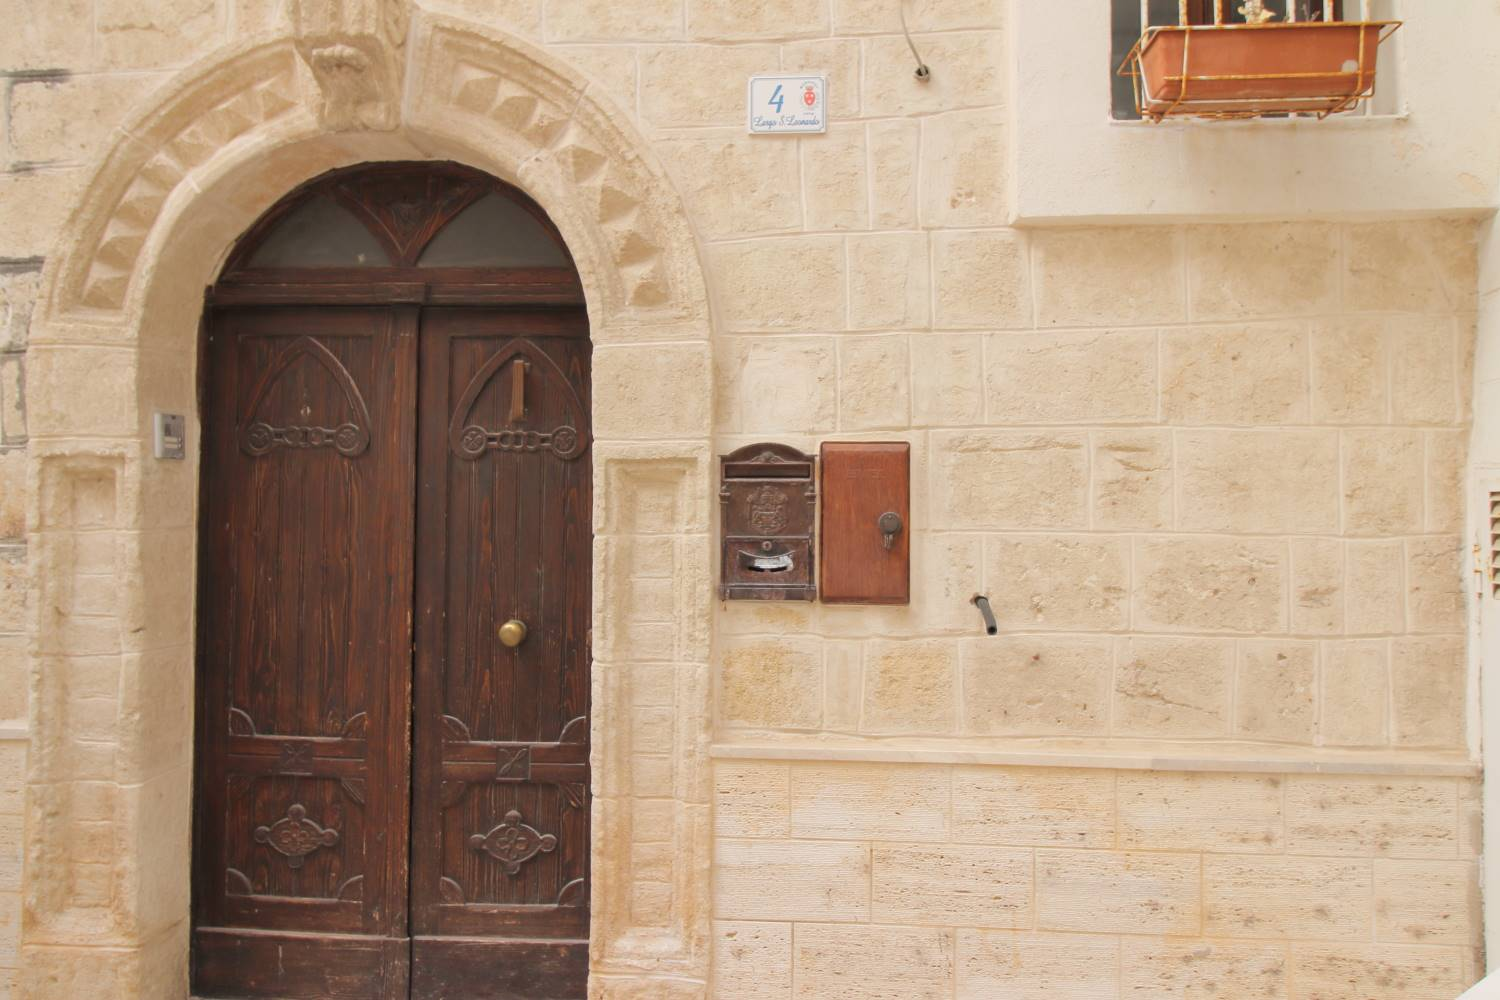 MONOPOLI, Apartment for sale, Be restored, Heating Non-existent, Energetic class: G, Epi: 165 kwh/m2 year, placed at 1°, composed by: 3 Rooms, Separate kitchen, , 1 Bedroom, 1 Bathroom, Price: € 160,